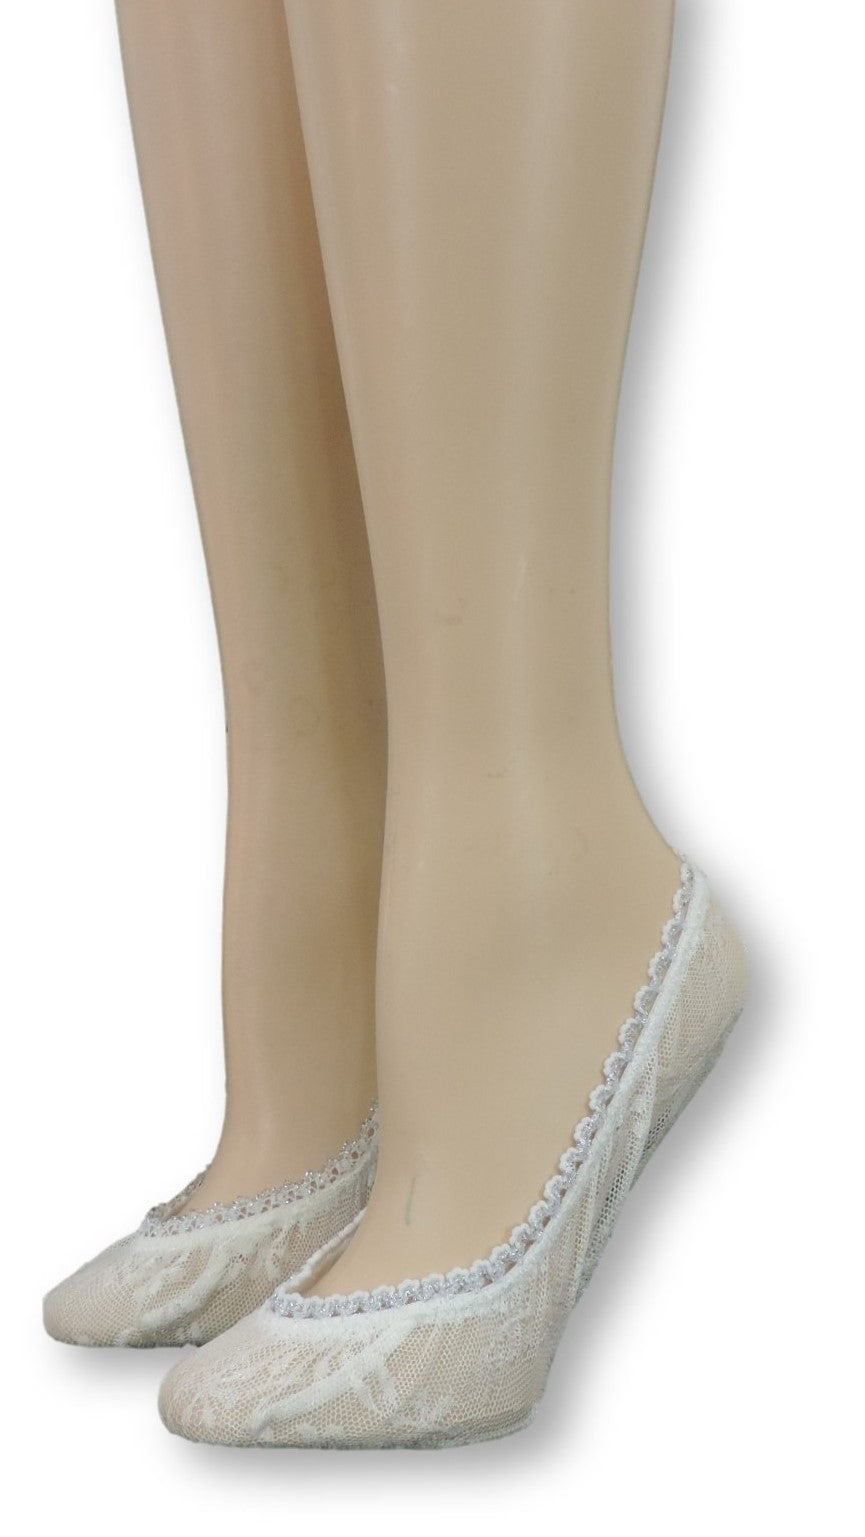 Pearl Ankle Socks with Glitter Lace - Global Trendz Fashion®